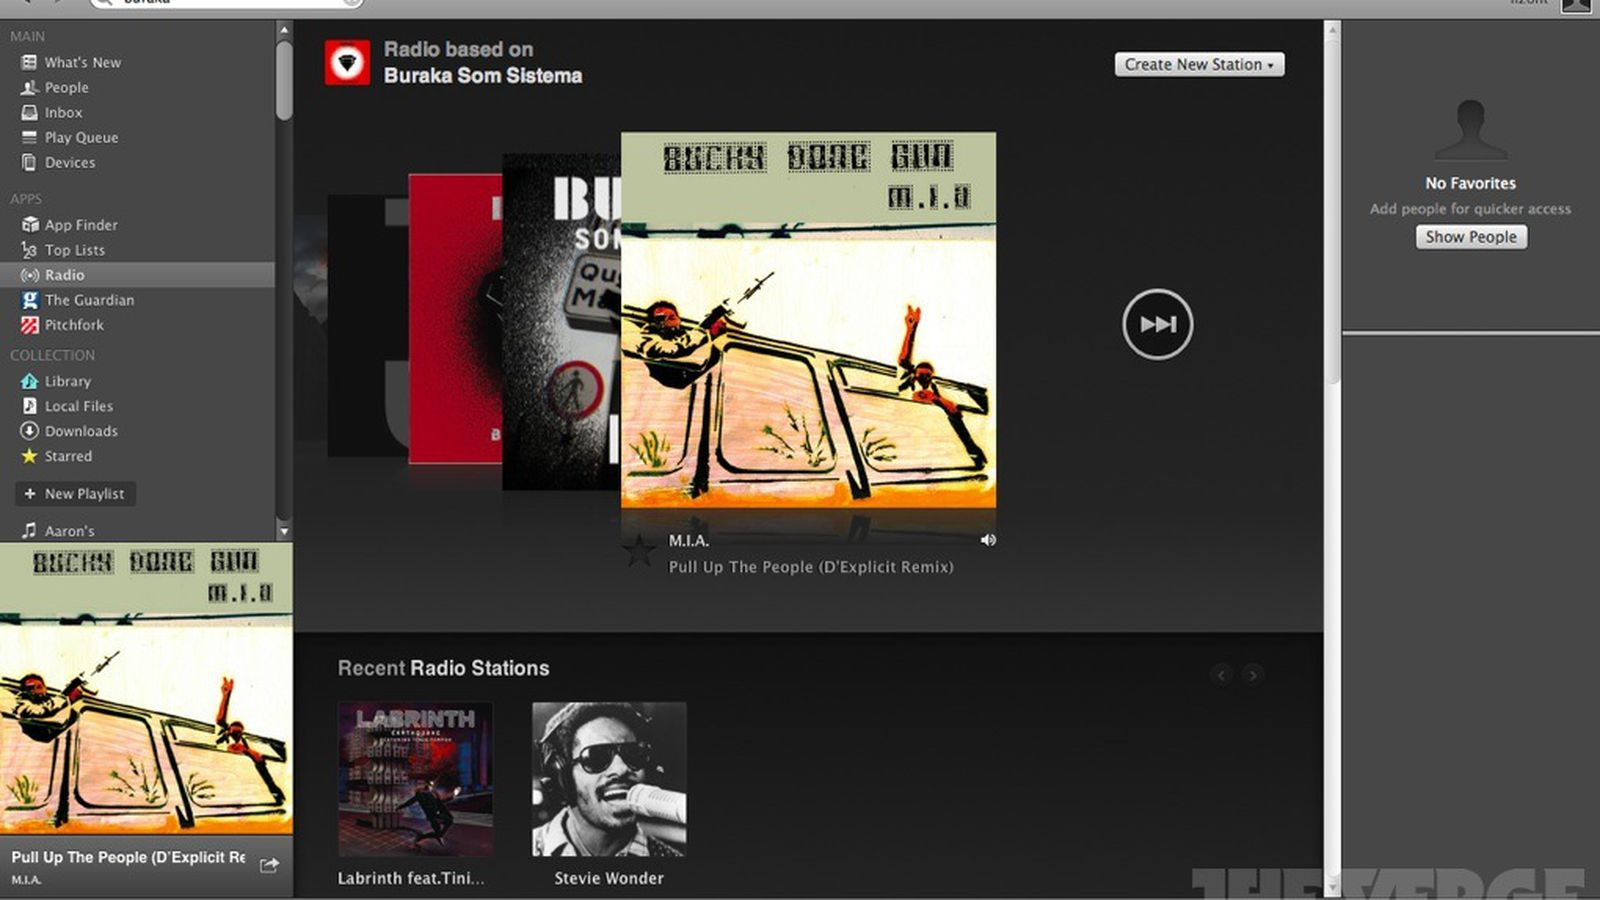 Spotify Radio experience overhauled in move to new app platform